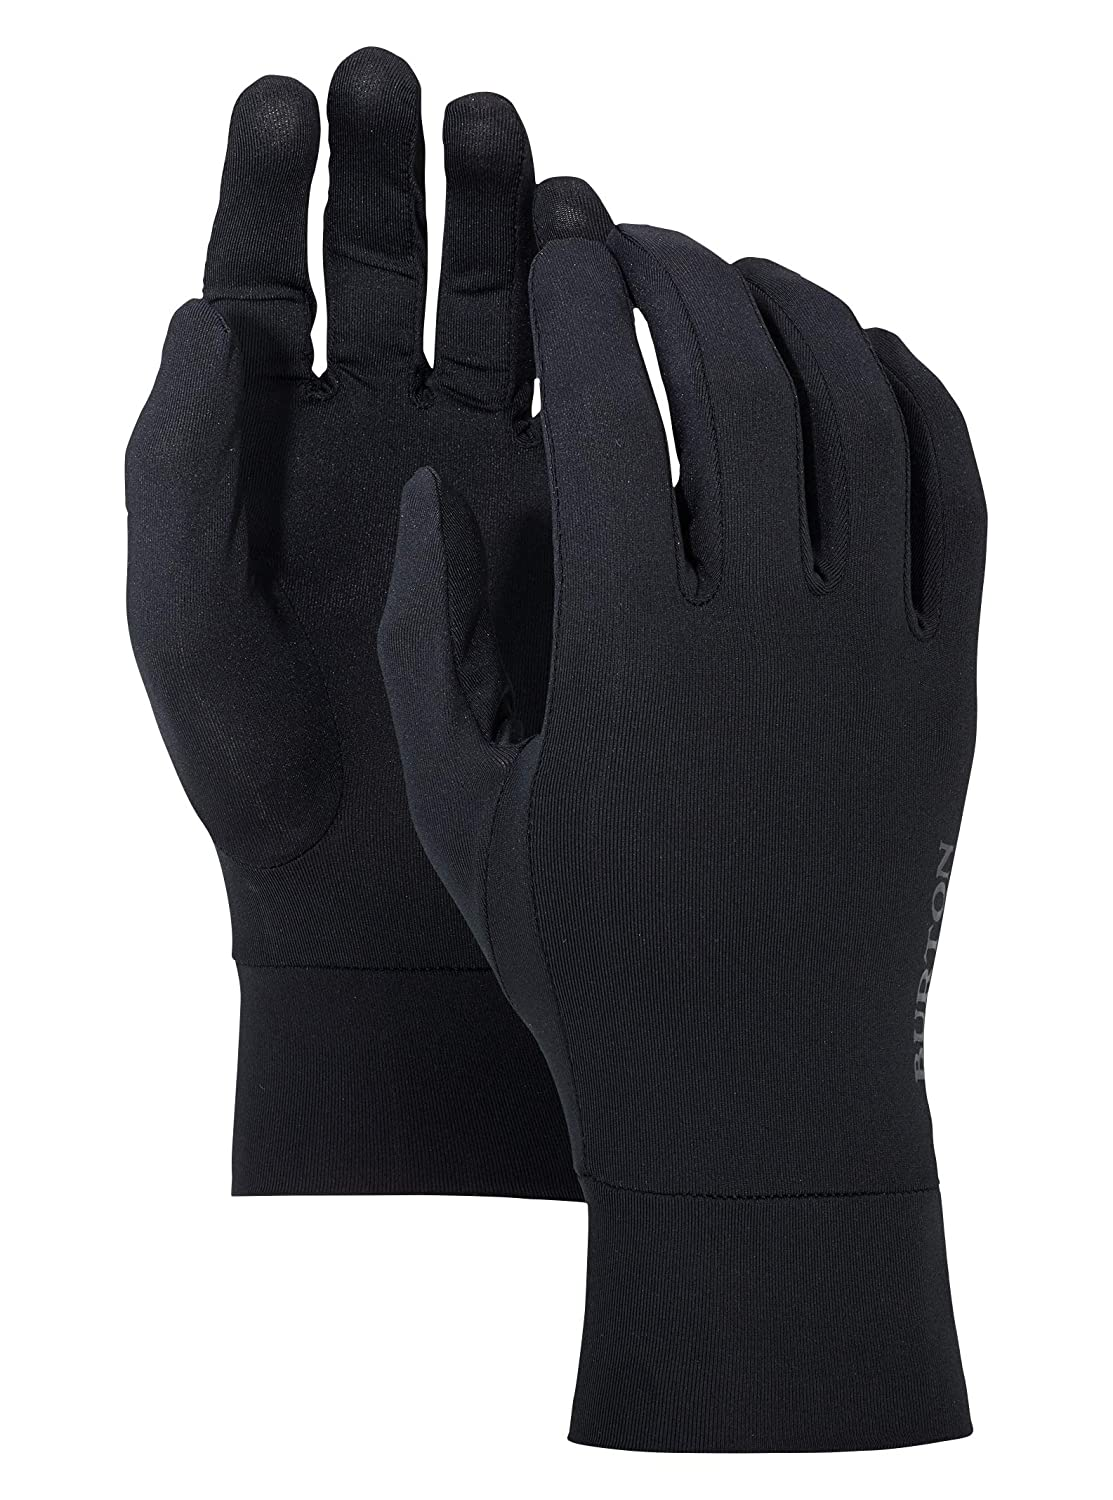 Burton Touchscreen Liner Gloves, True Black, Small/Medium Burton Snowboards 103191